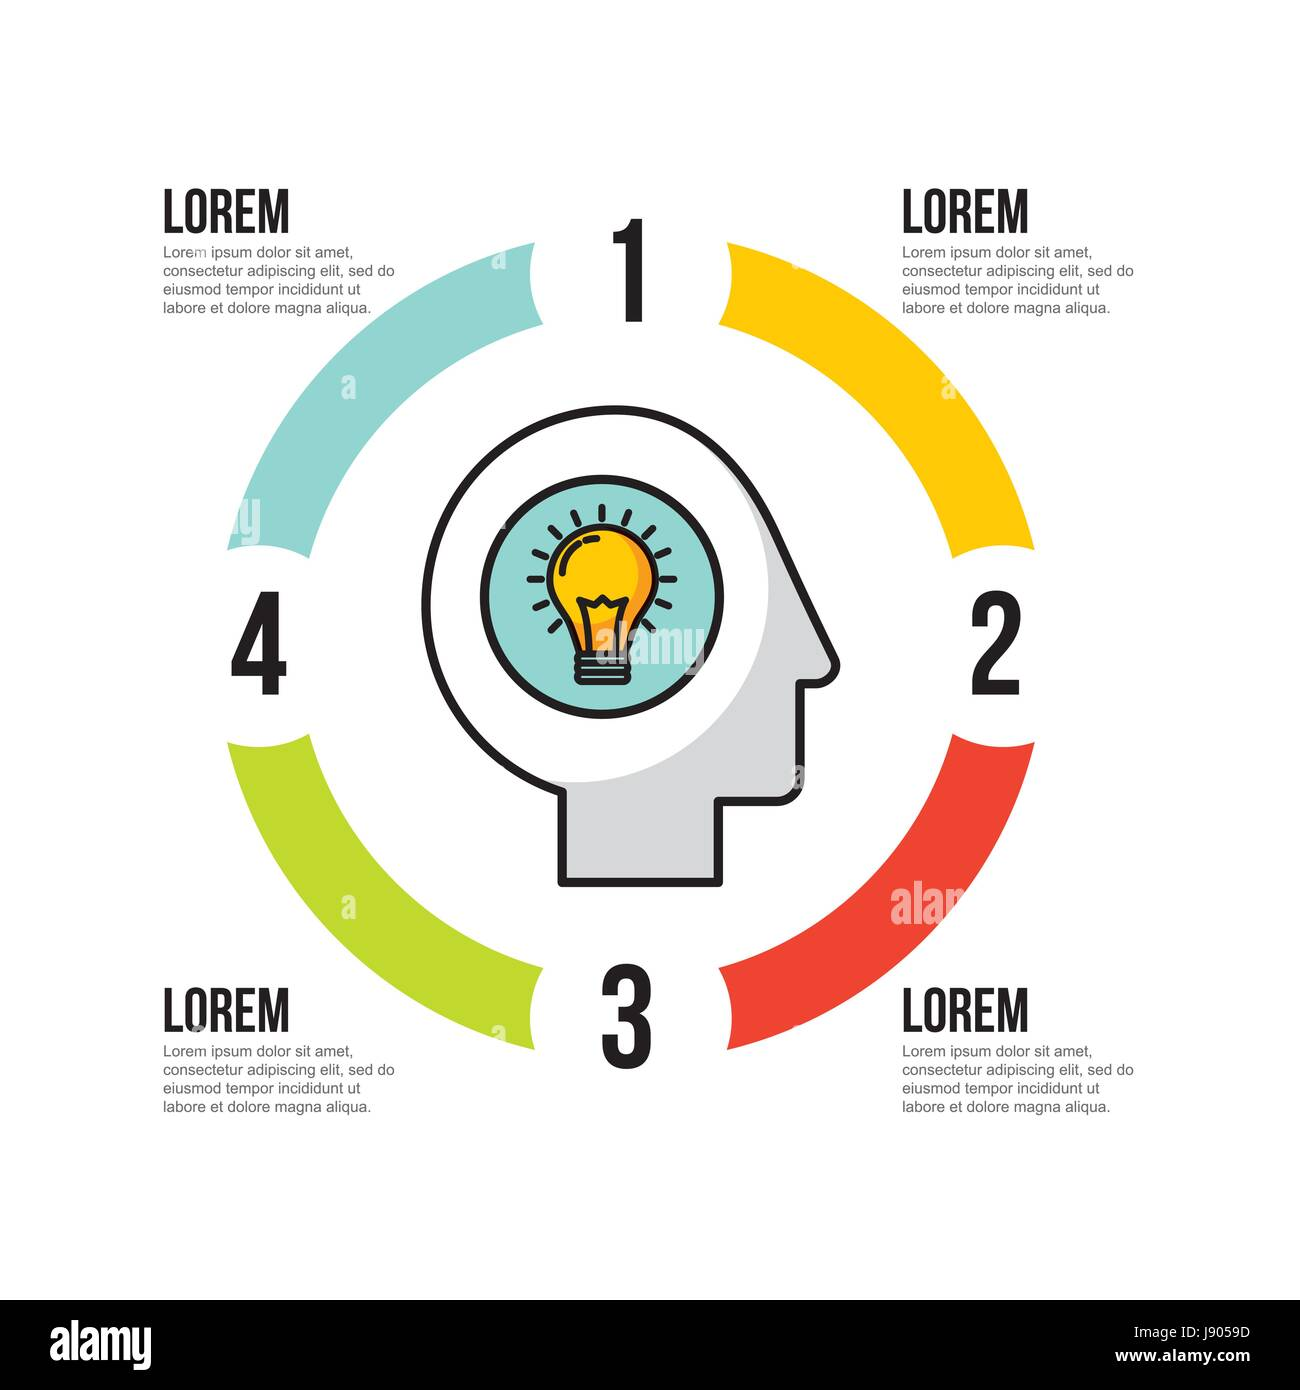 infographic related to the human mind image  - Stock Image